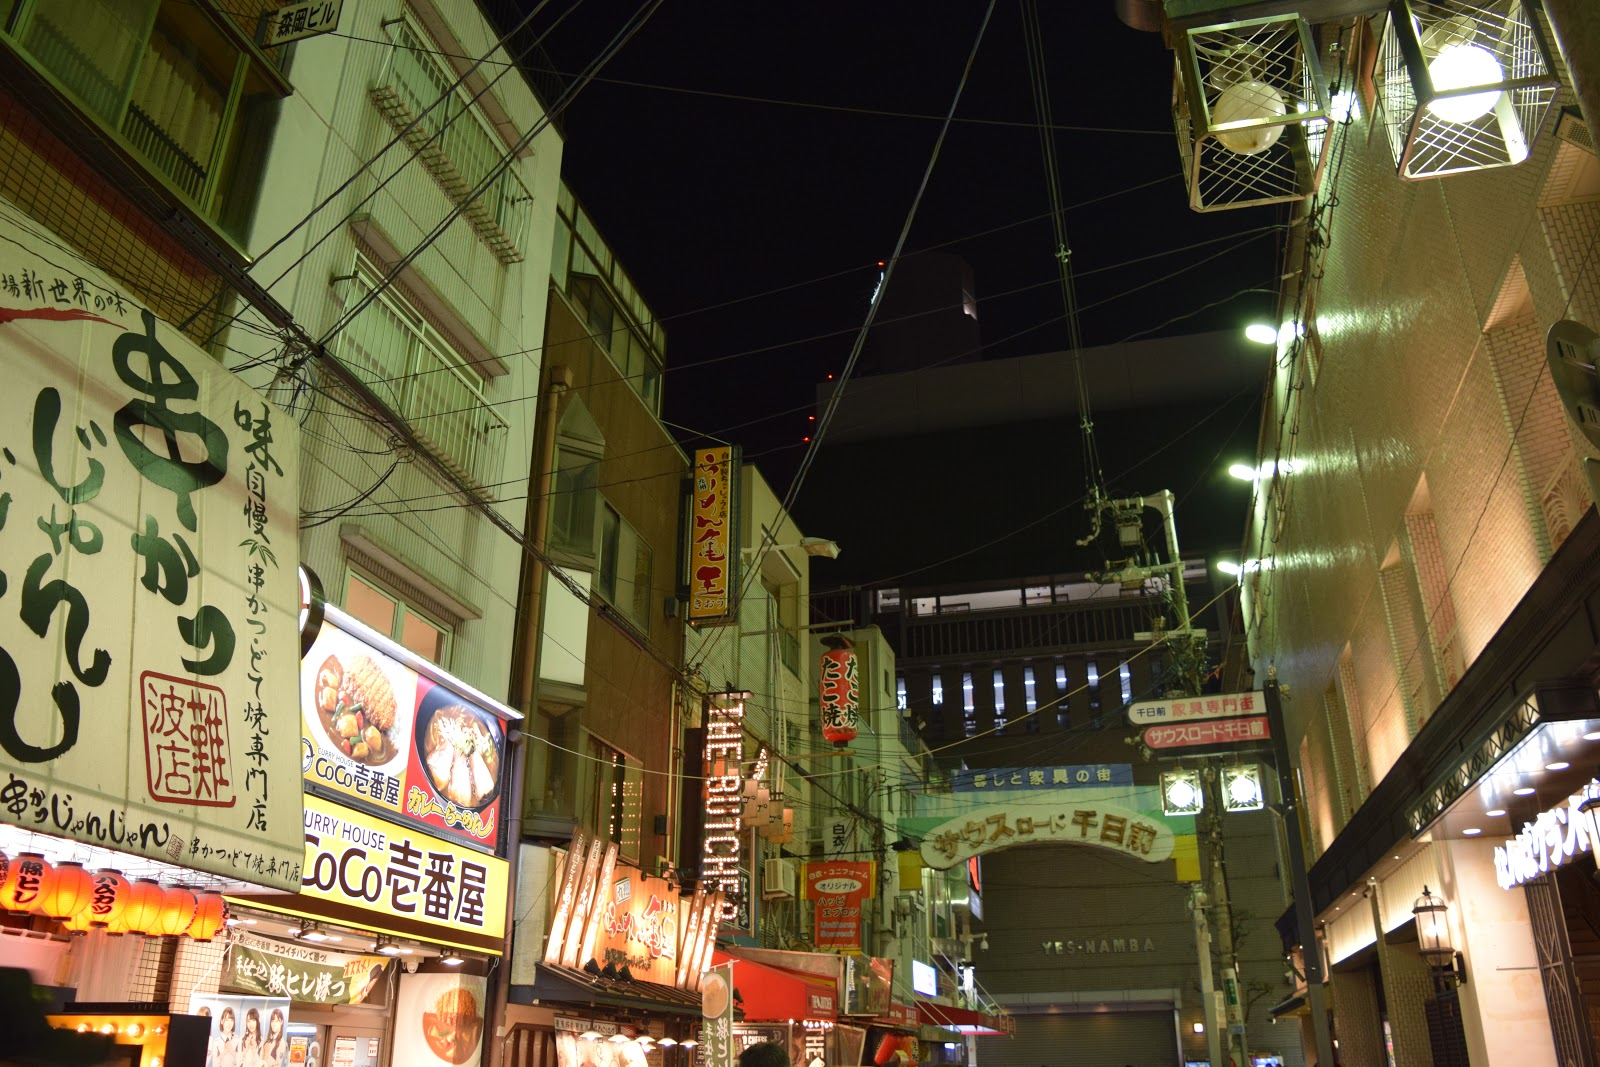 neon, lanterns and shop signs in Namba at night